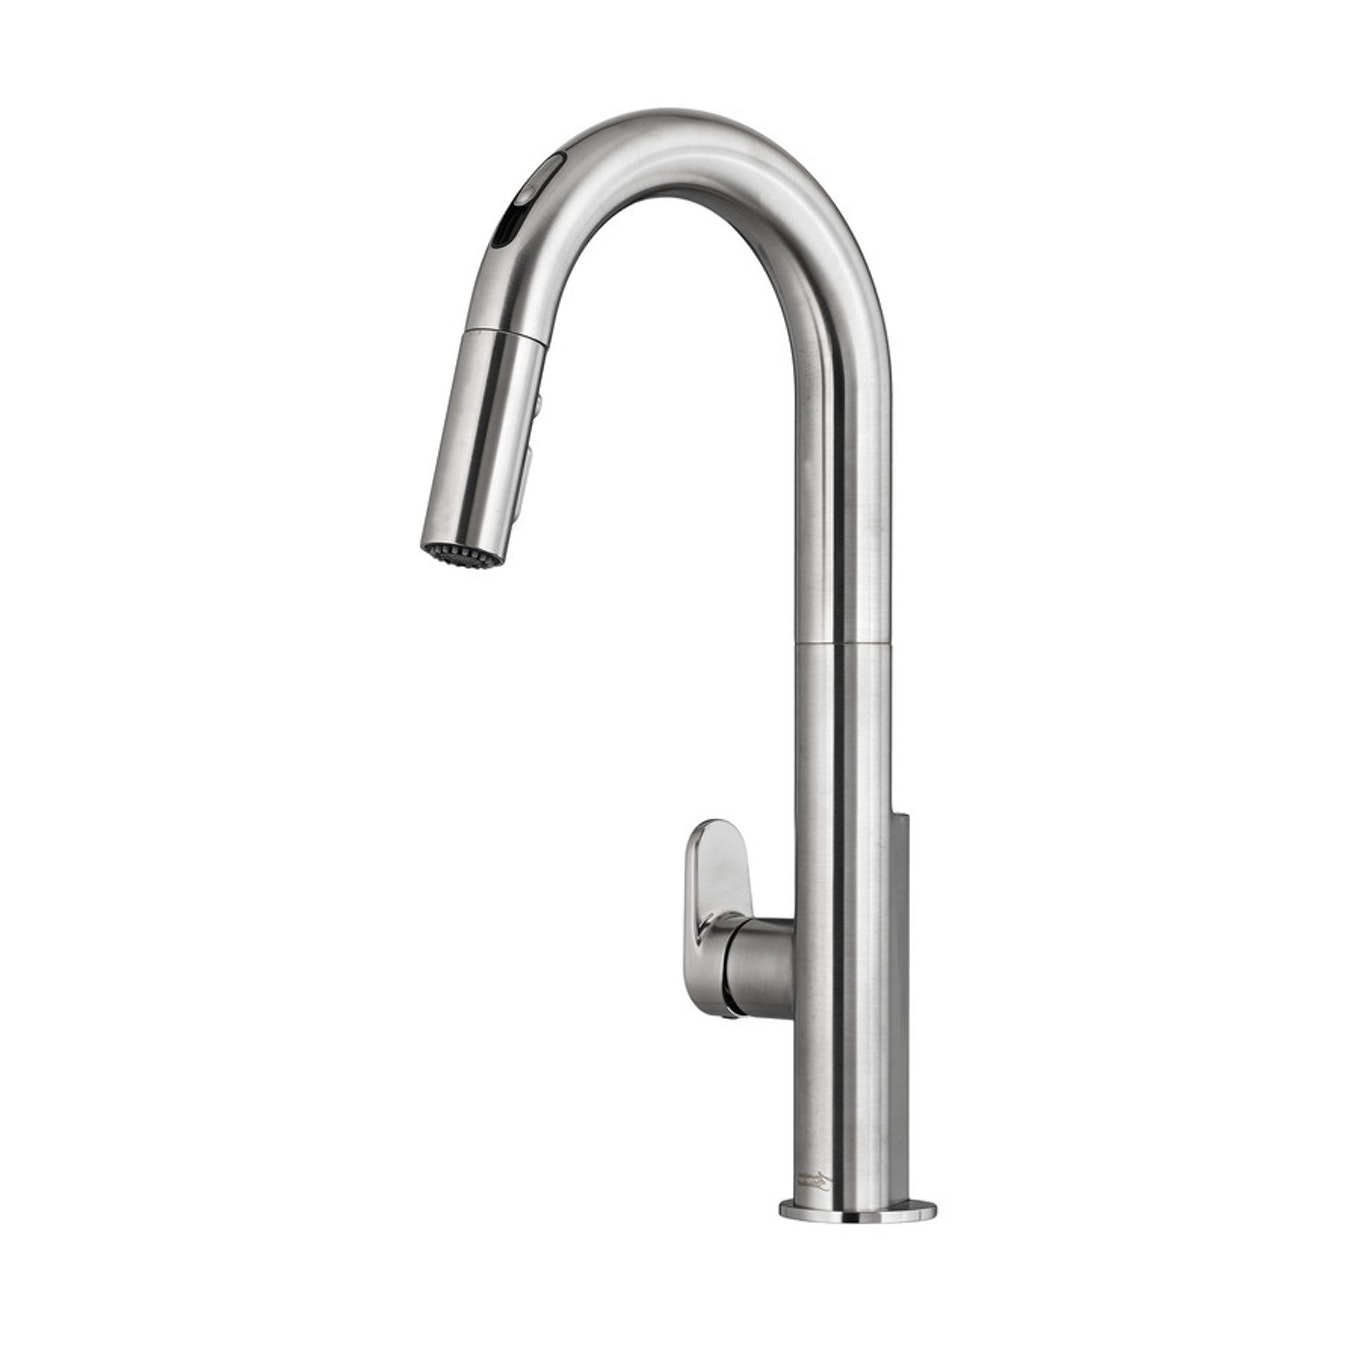 Ideas, kohler elliston tub and shower faucet kohler elliston tub and shower faucet moen kitchen faucet with water filter 1360 x 1360  .